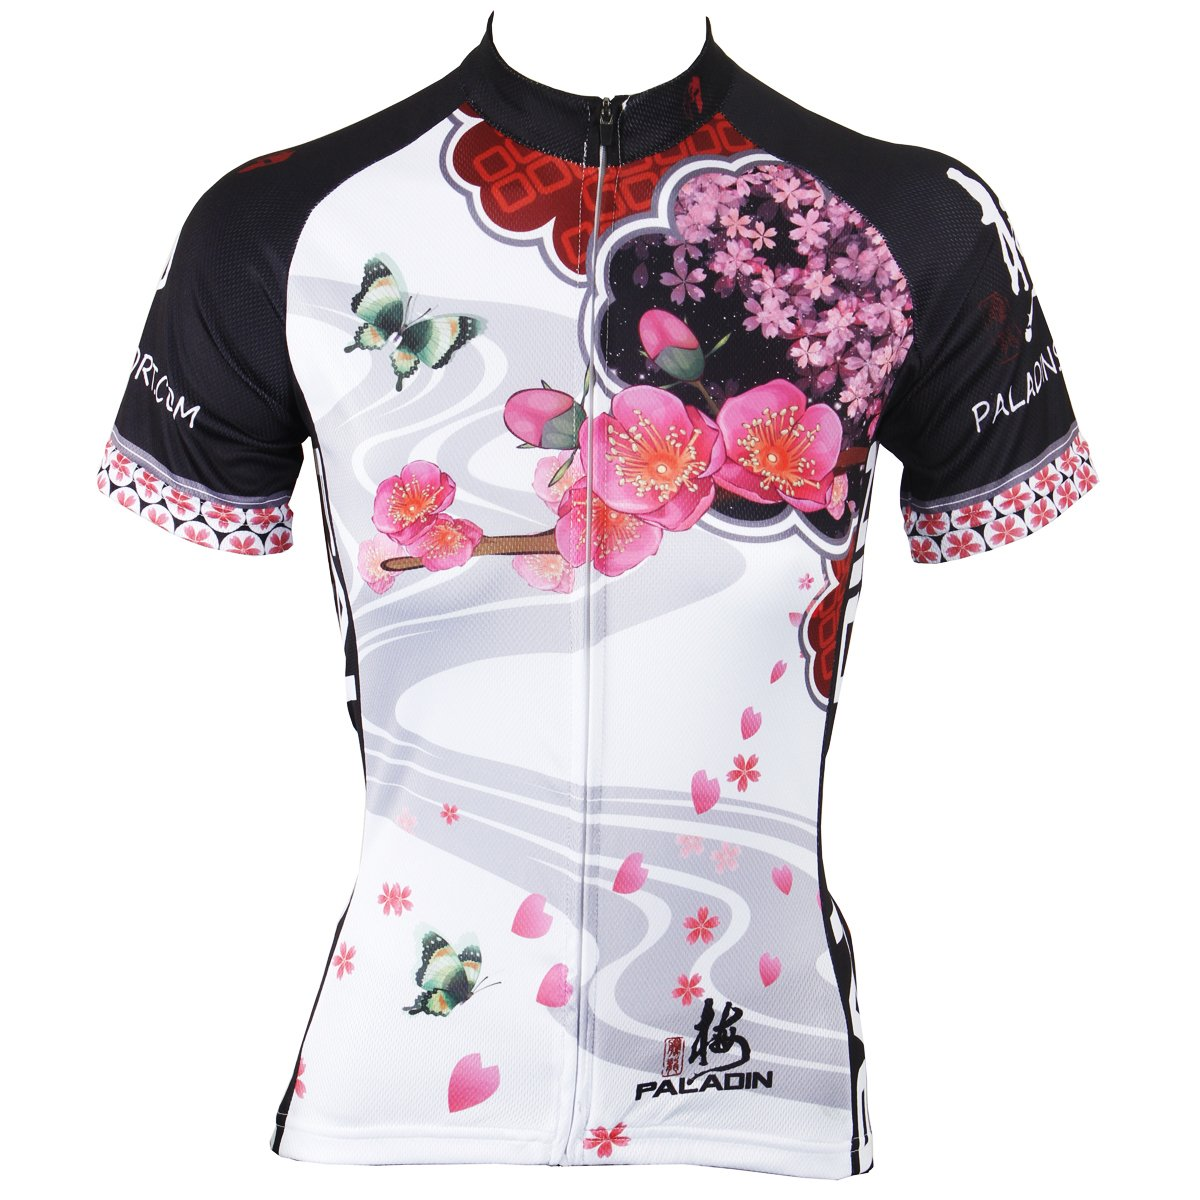 Paladin Cycling Jersey for Women Short Sleeve Plum Flower Pattern Bike Shirt c463051d6b49